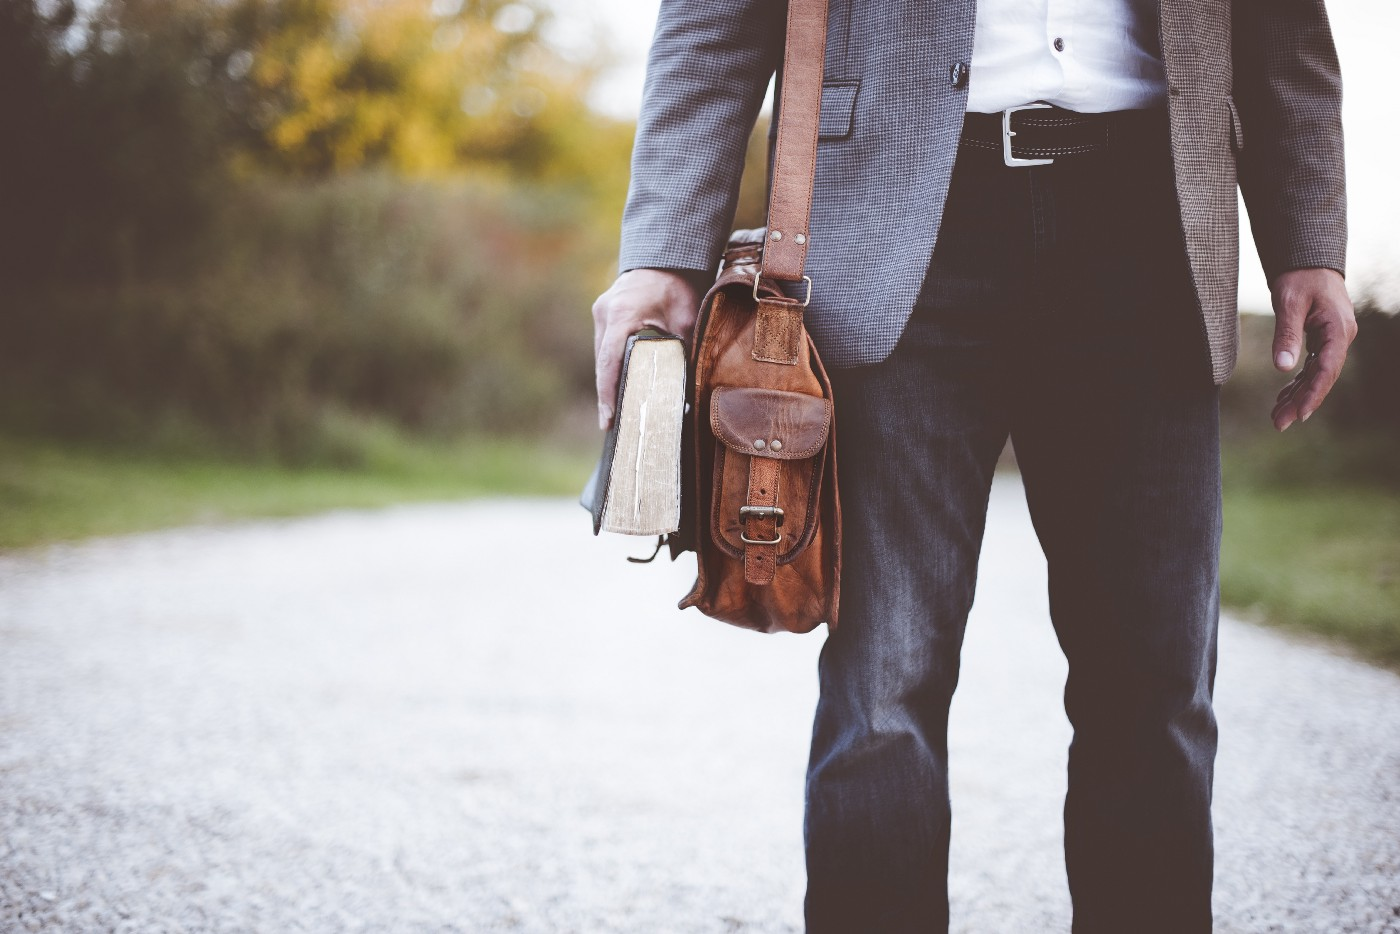 sophisticated guy holding a book and carrying a leather bag